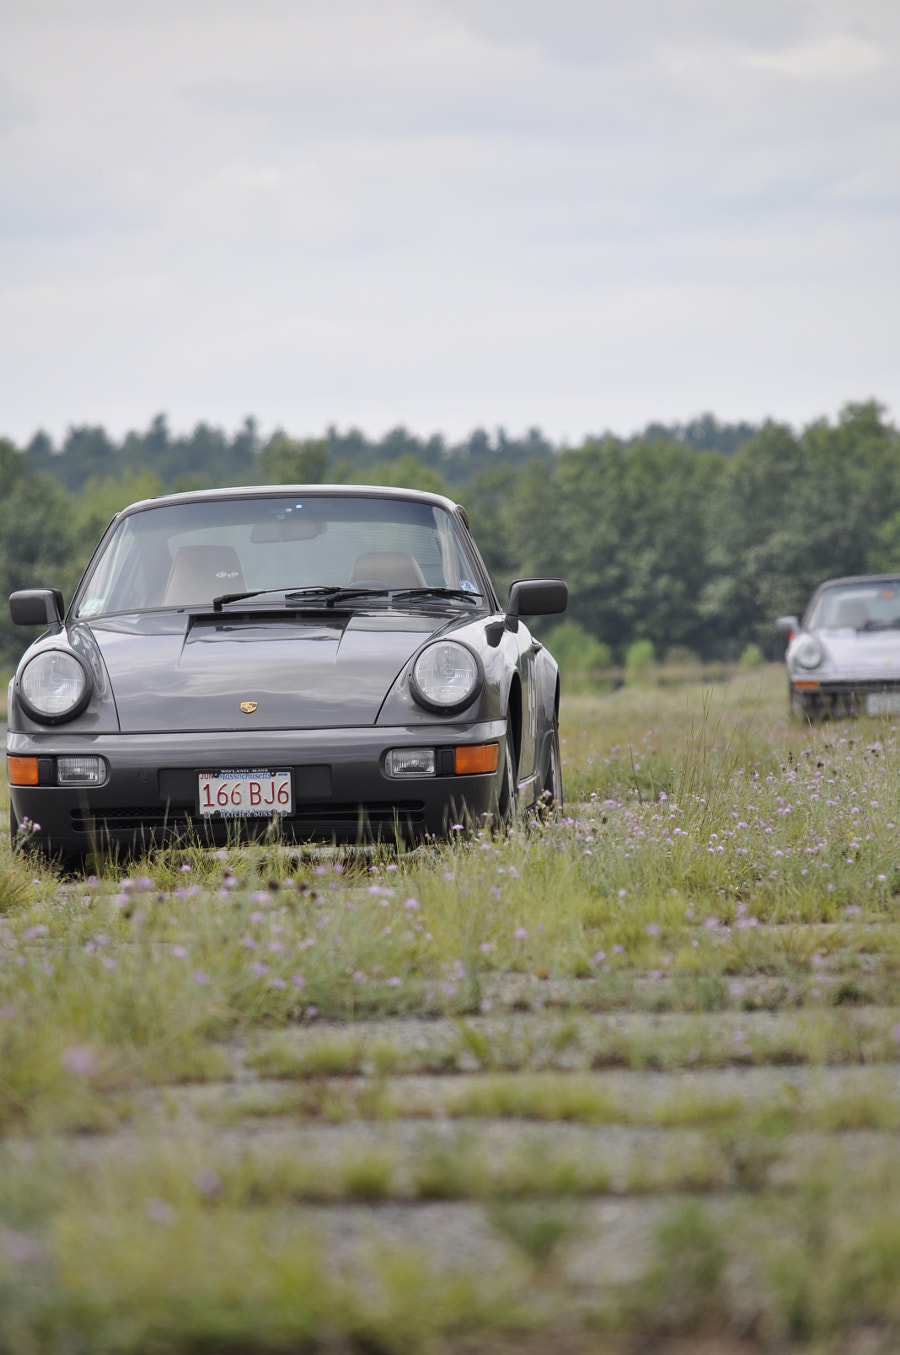 911s in the wild